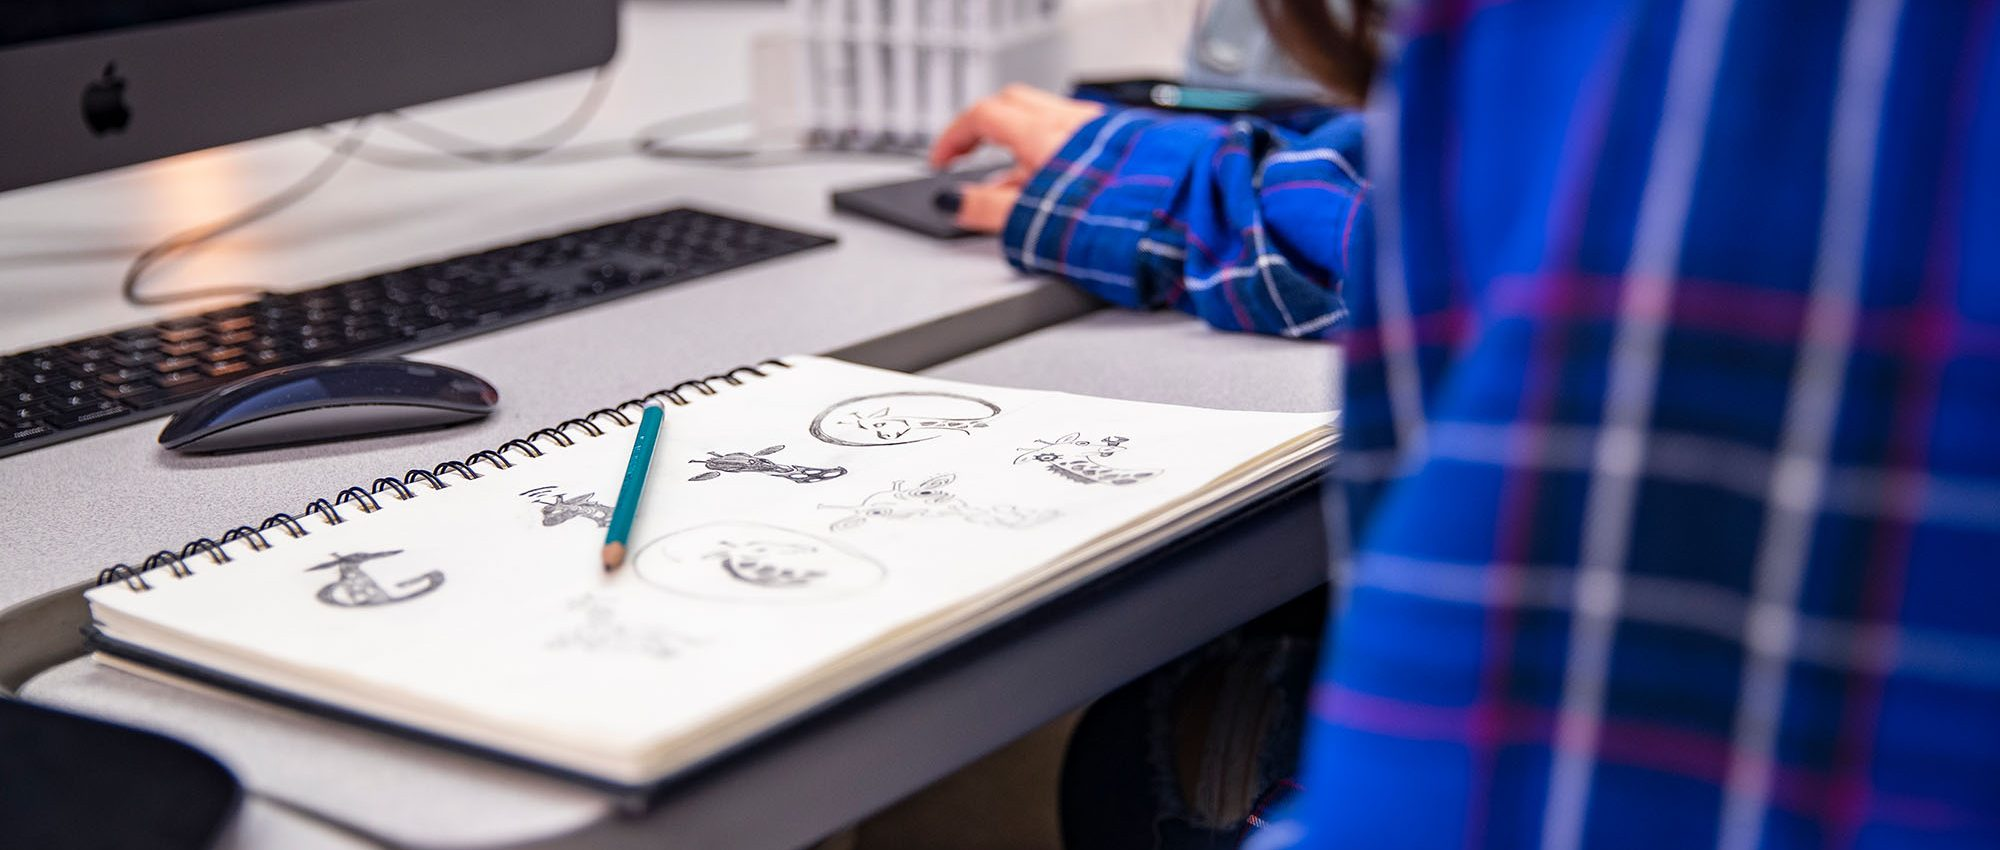 graphic design student studying logo drawings